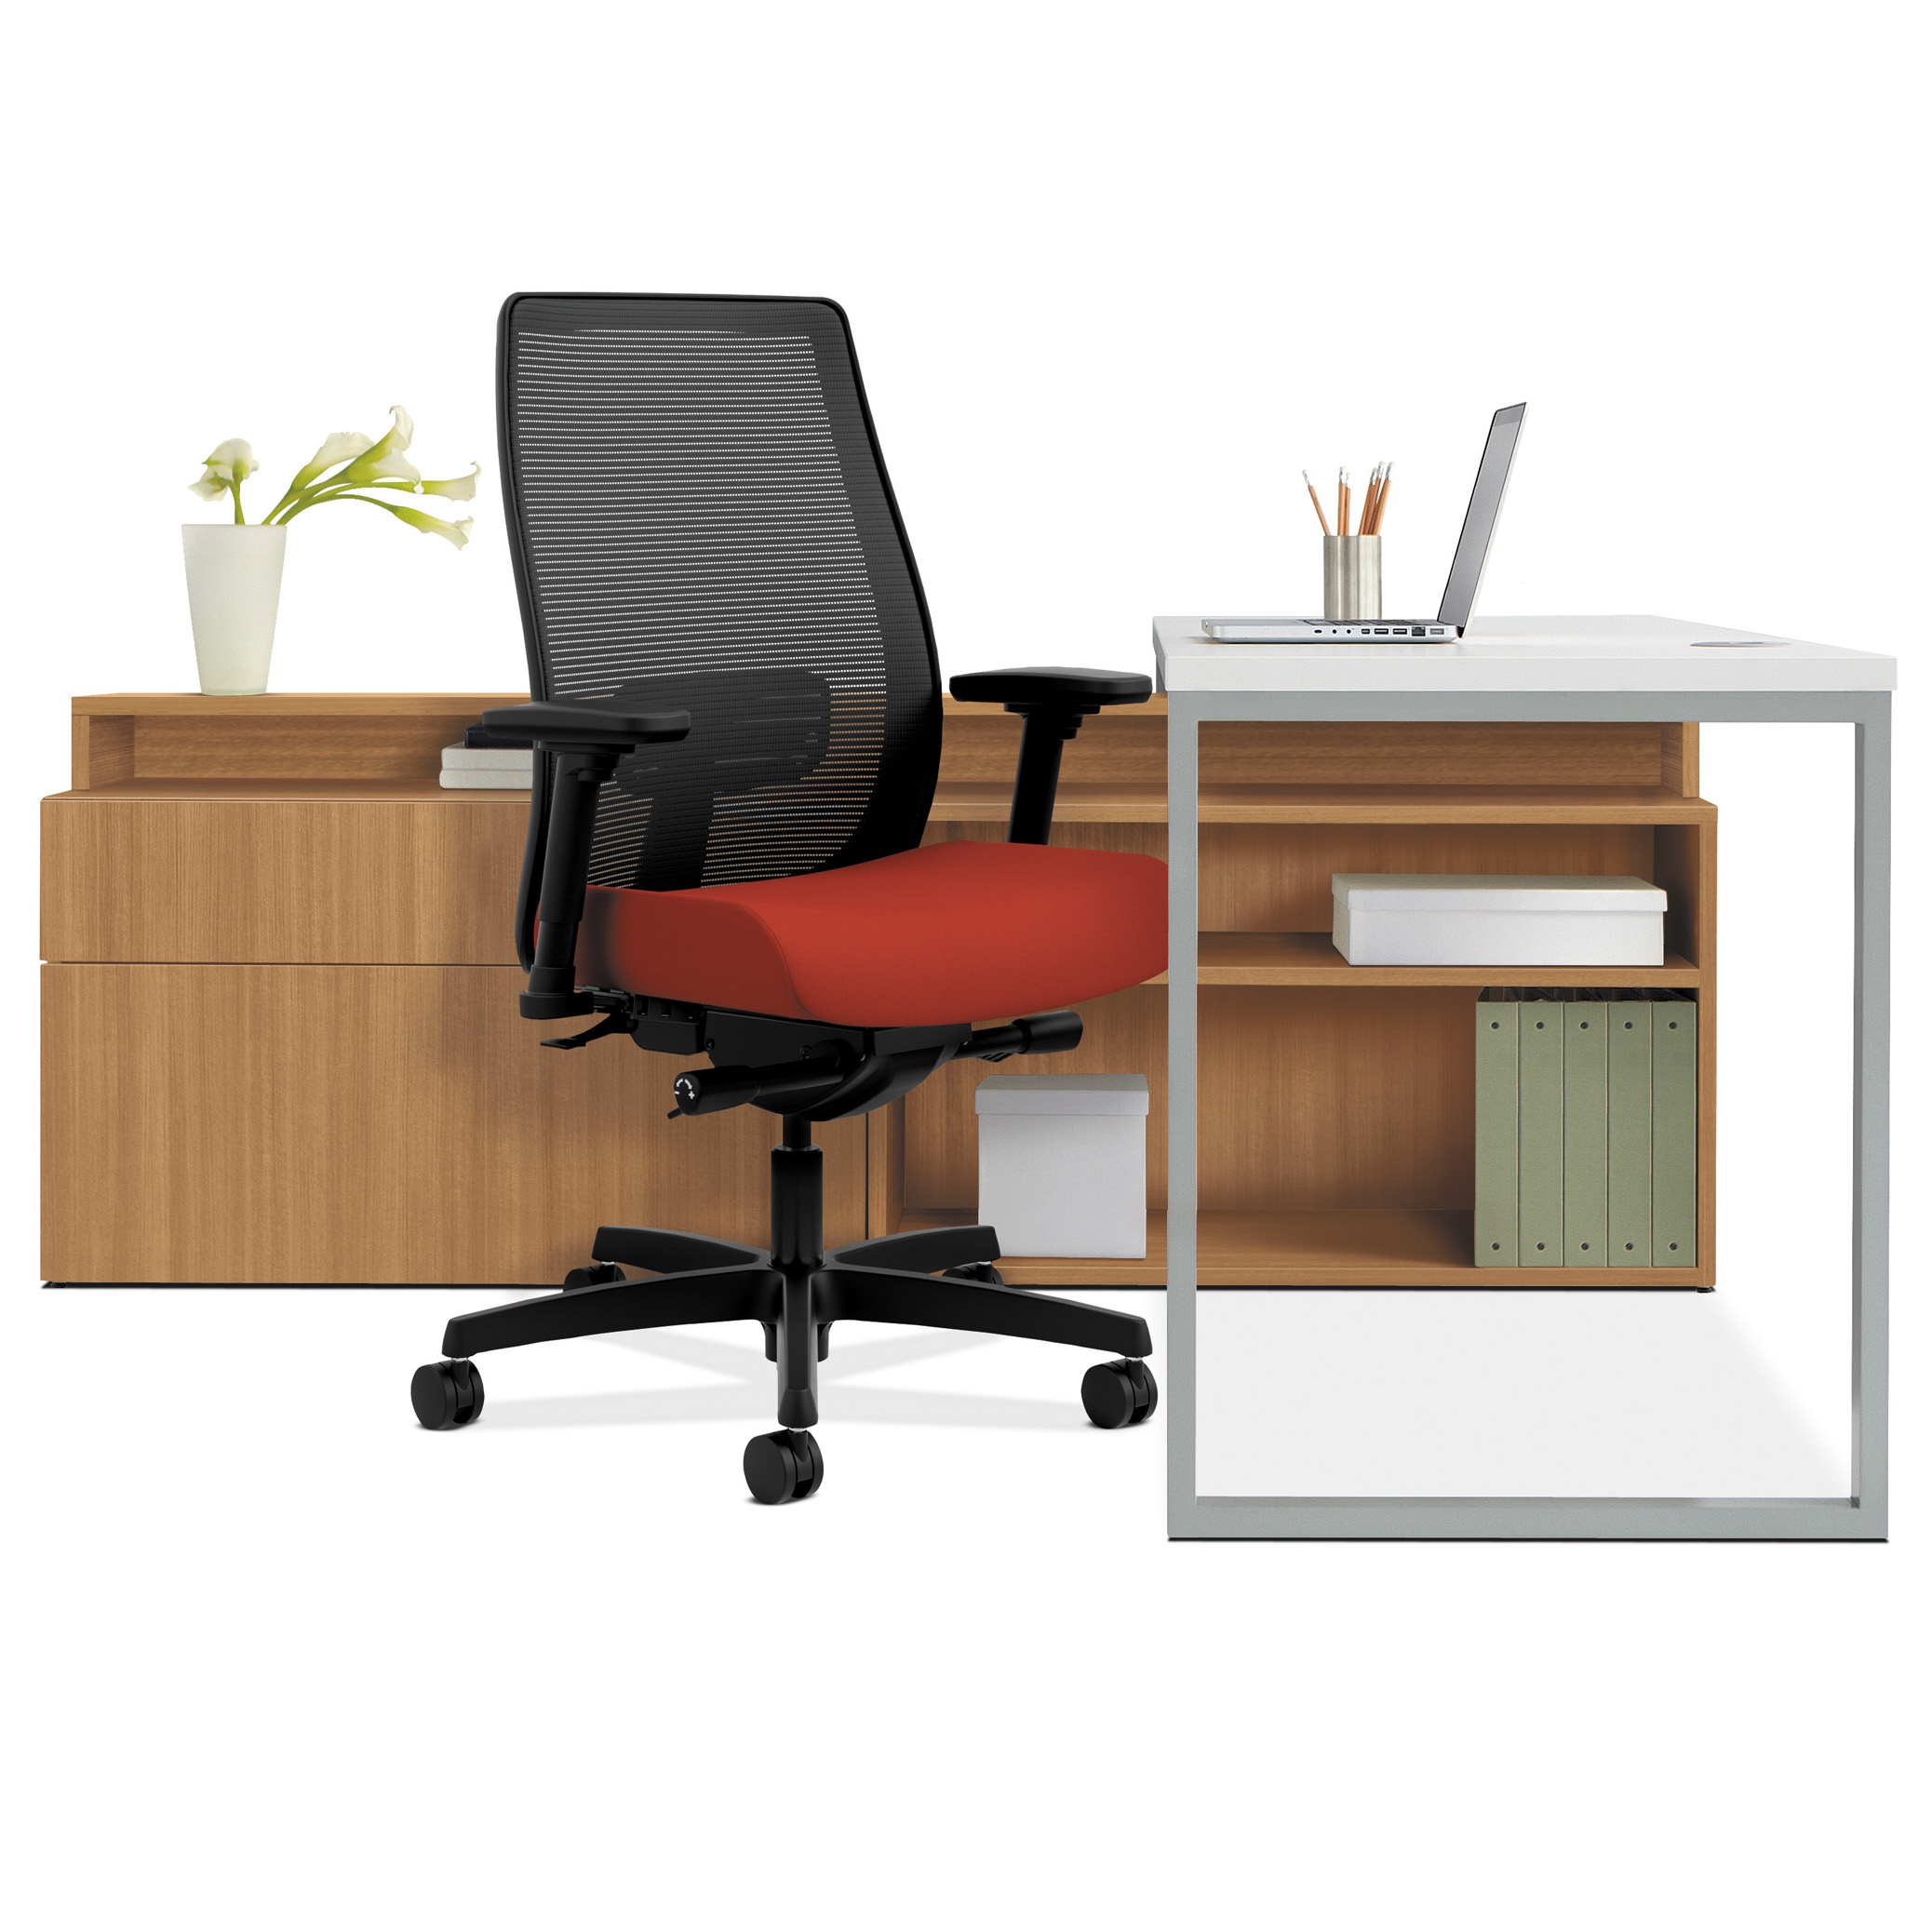 Voi Office Furniture Chicago New Rental Used Office